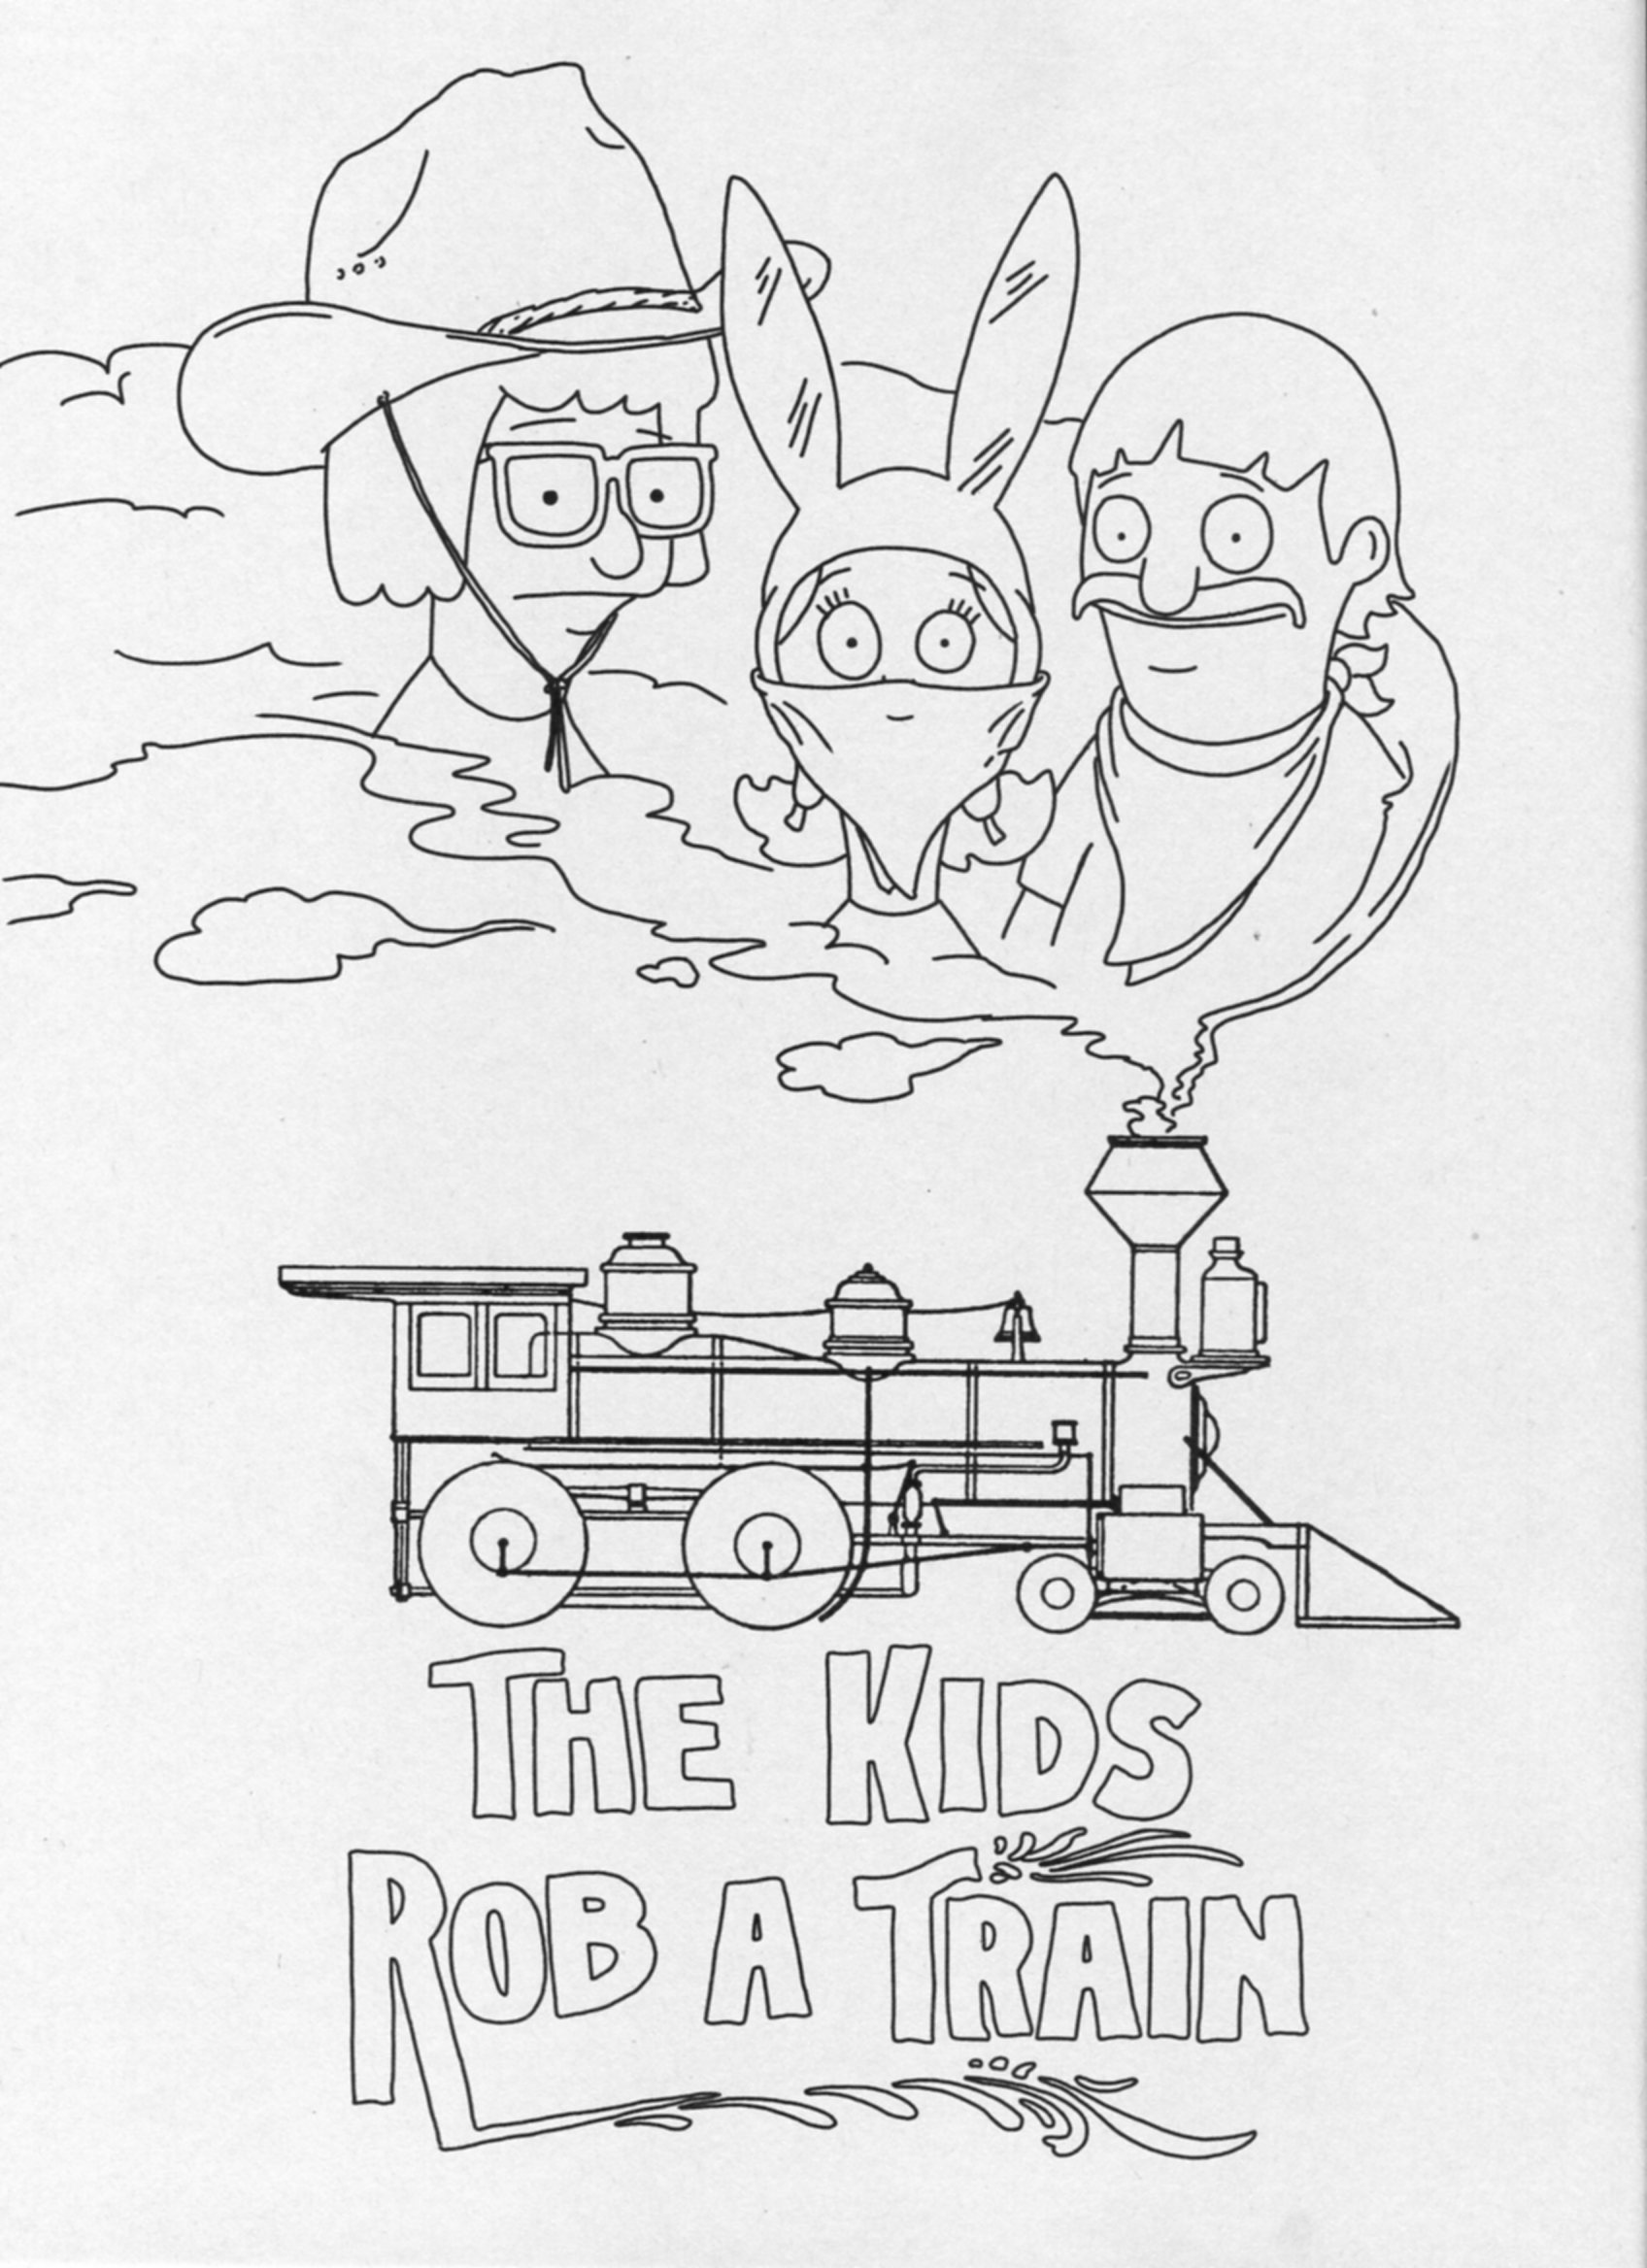 bobs burger coloring pages - photo#13